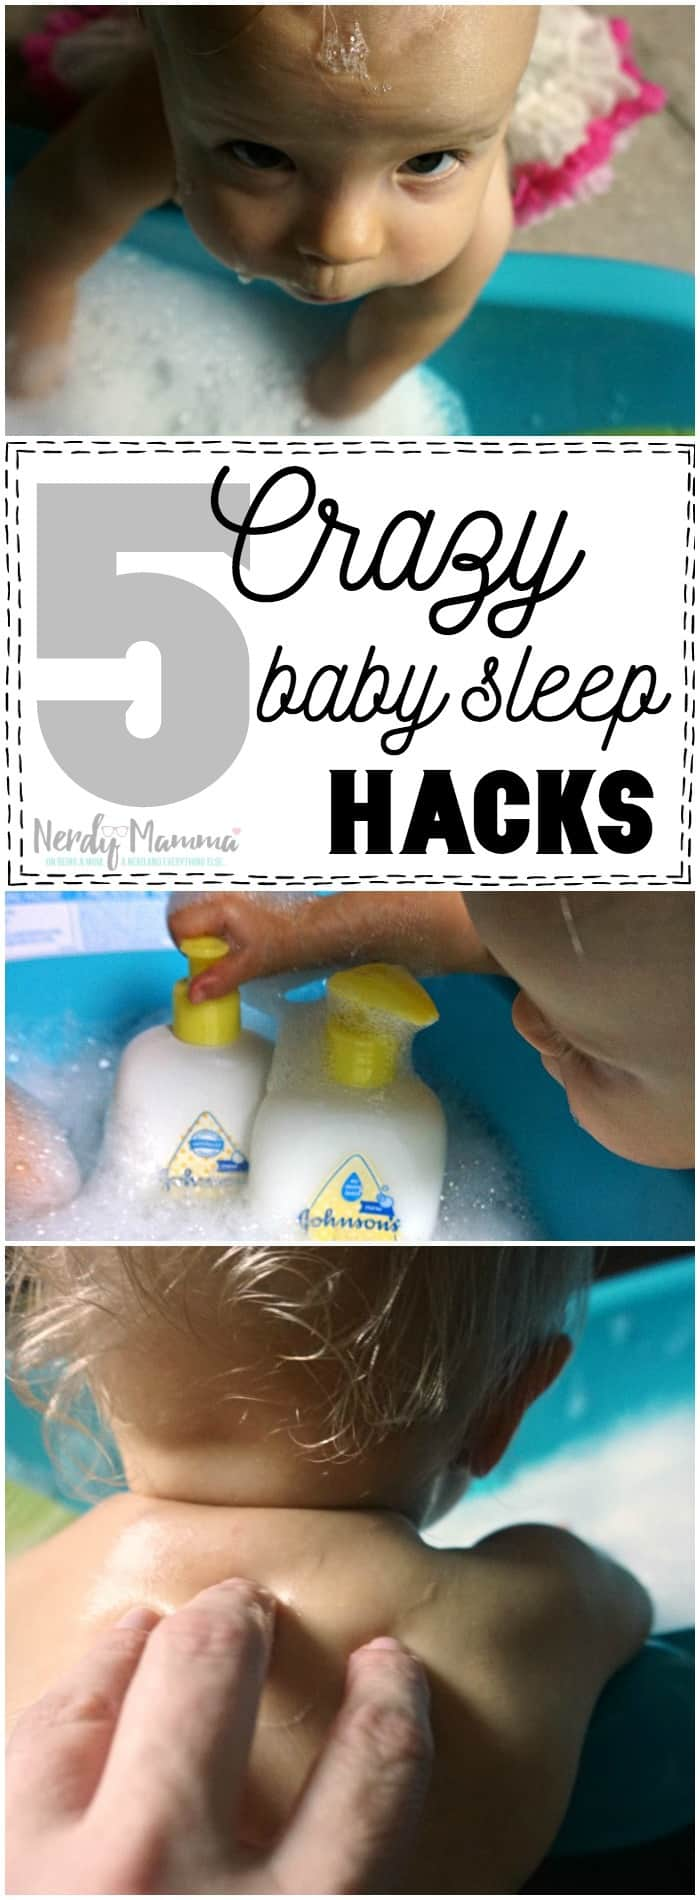 I love these 5 Crazy Baby Sleep Hacks--this woman is a genius (well, now to see if they actually work). LOL!